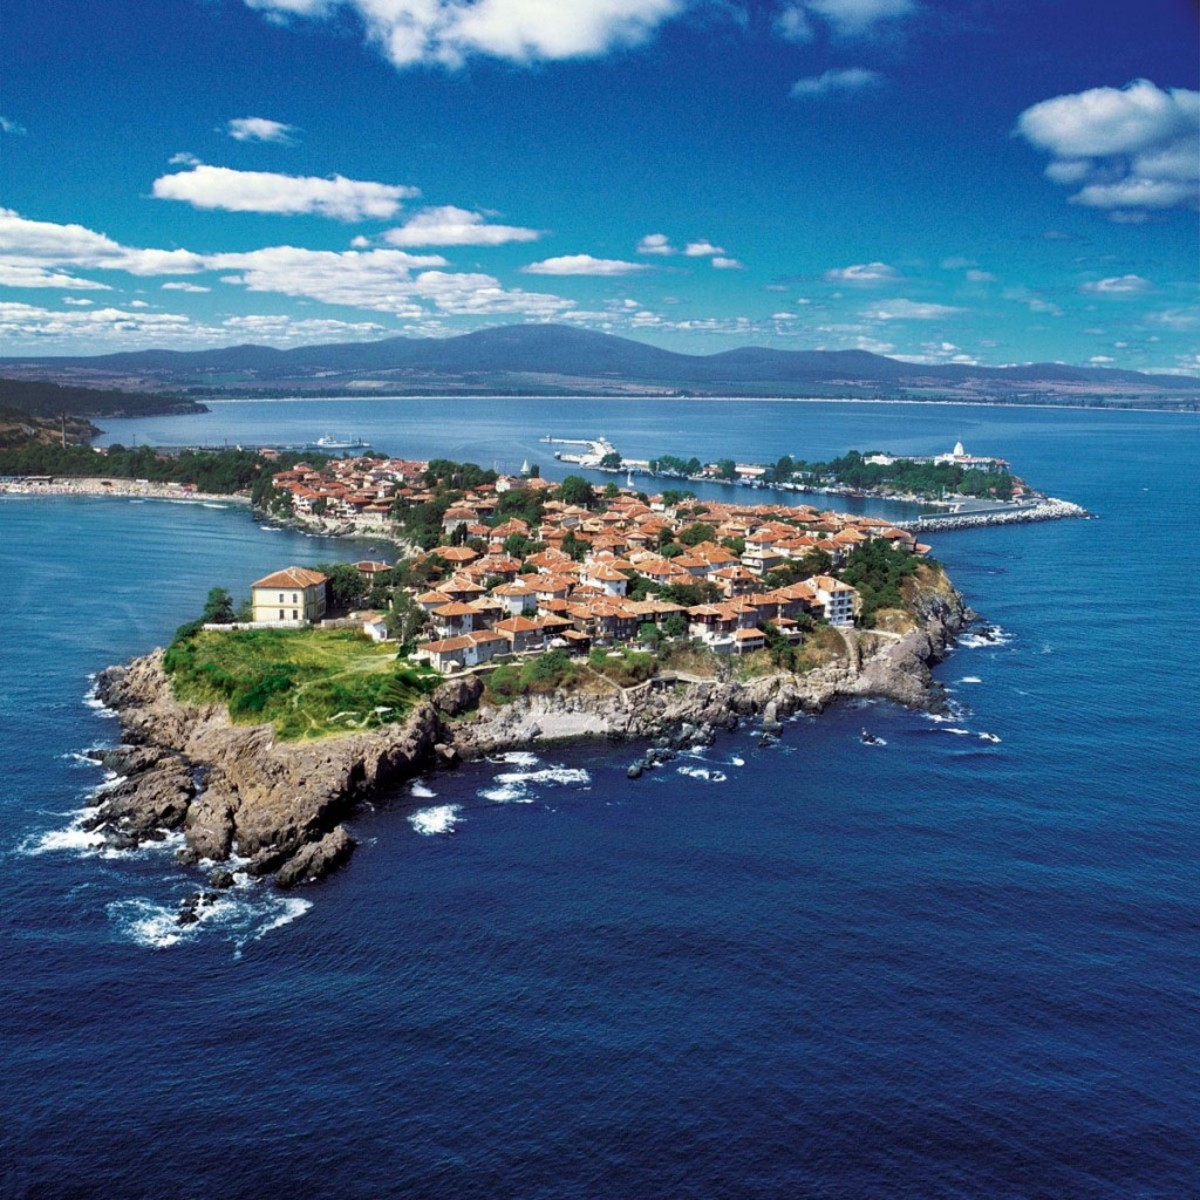 Sozopol, Bulgaria - Gorgeous Scenery